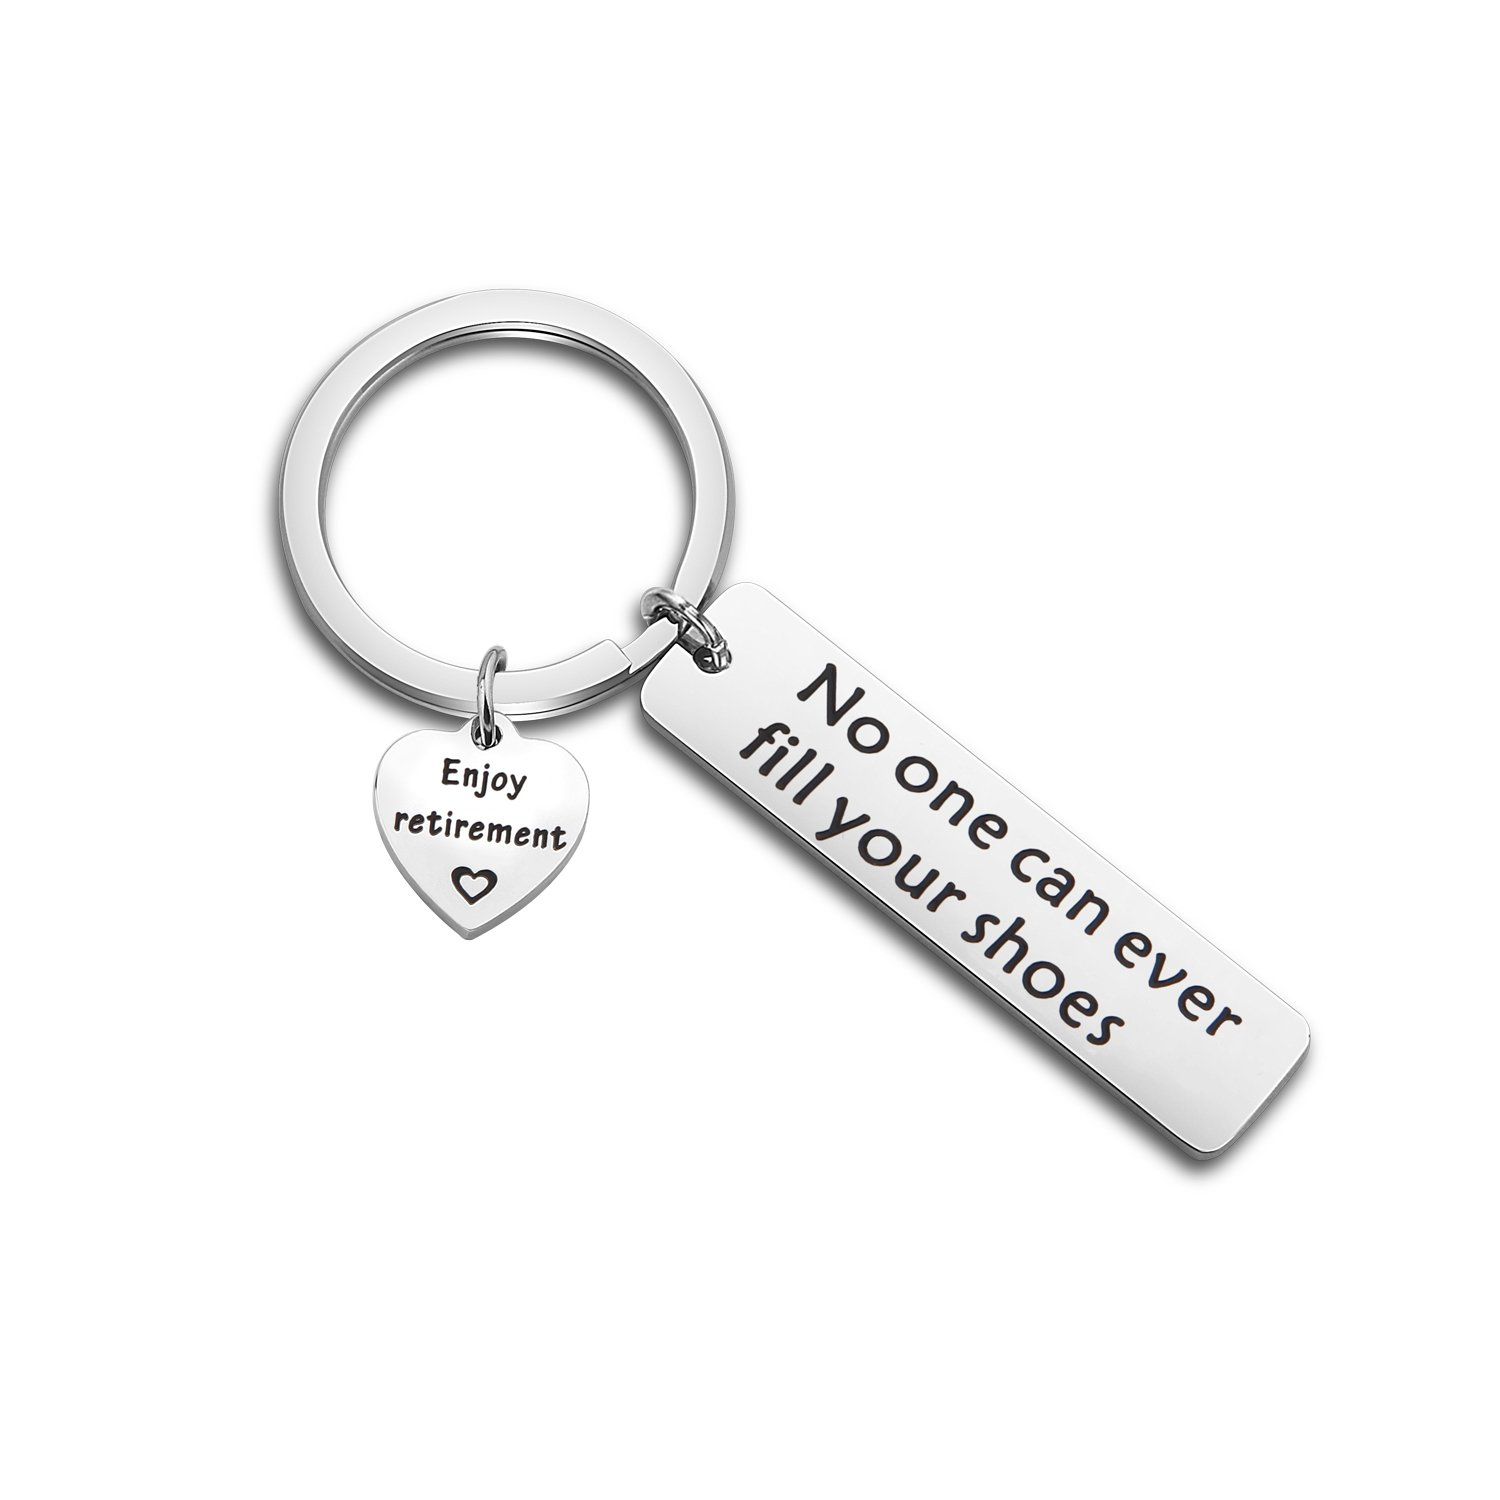 WUSUANED Retirement Keychain No One Can Ever Fill Your Shoes Enjoy Retirement Gift For Coworker Dad (no one fill your shoes keychain)